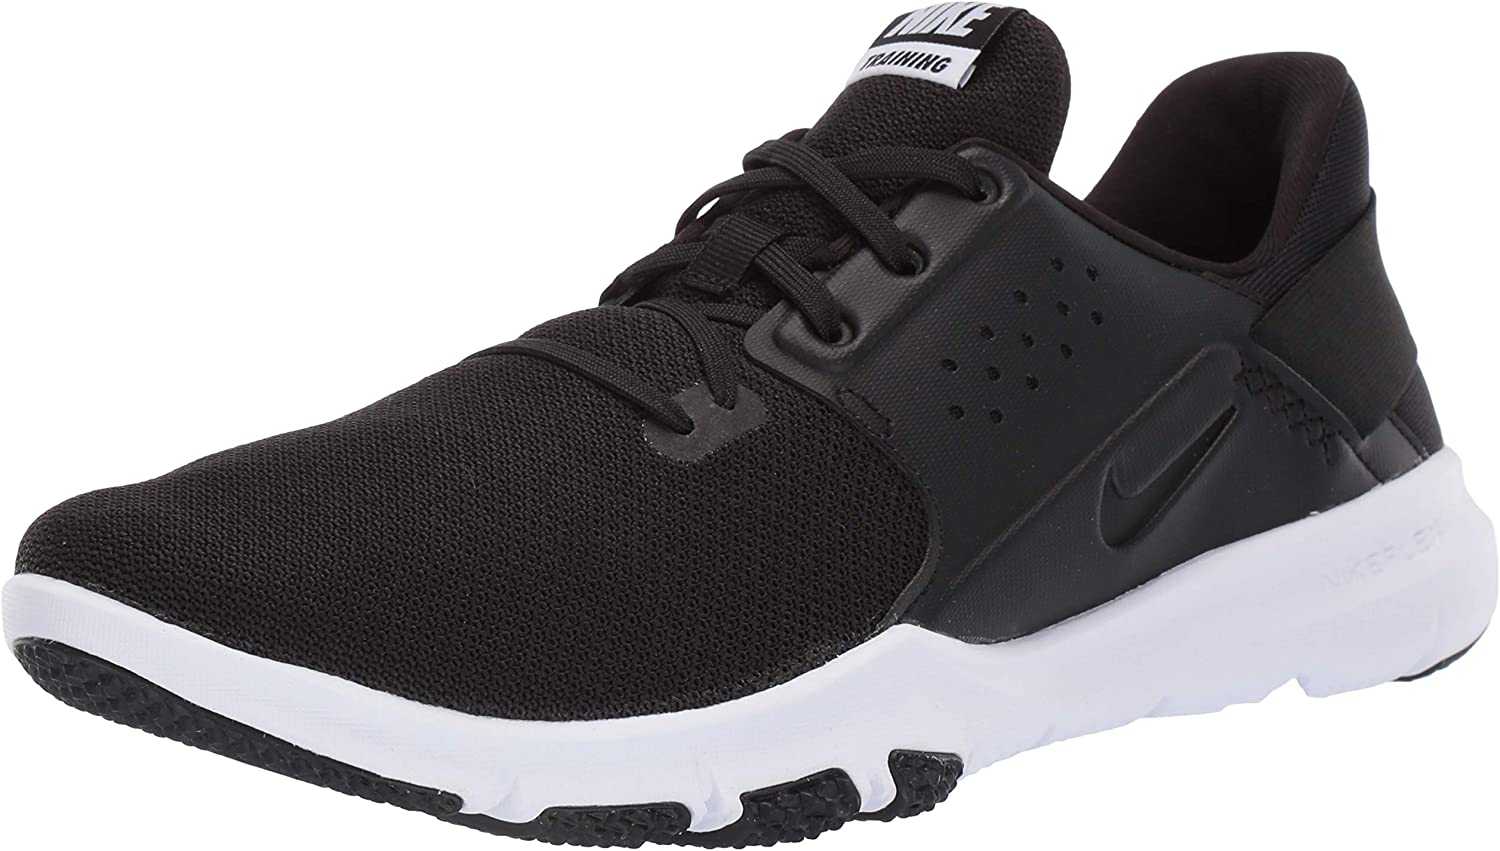 Nike Men's Flex Control Tr3 Fitness shoes